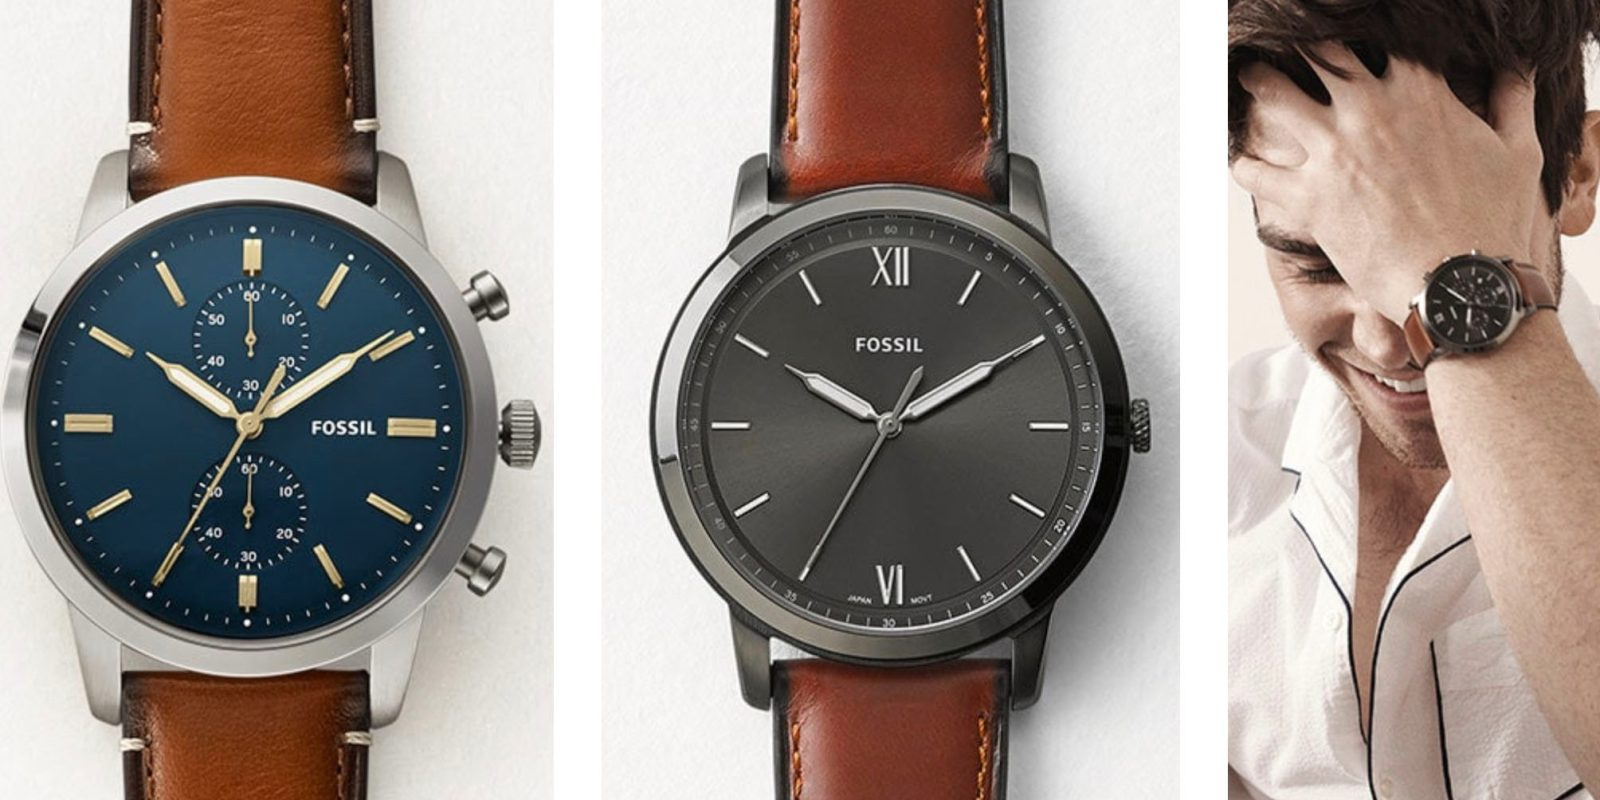 Fossil's Semi-Annual Sale cuts up to 50% off smartwatches, briefcases & more